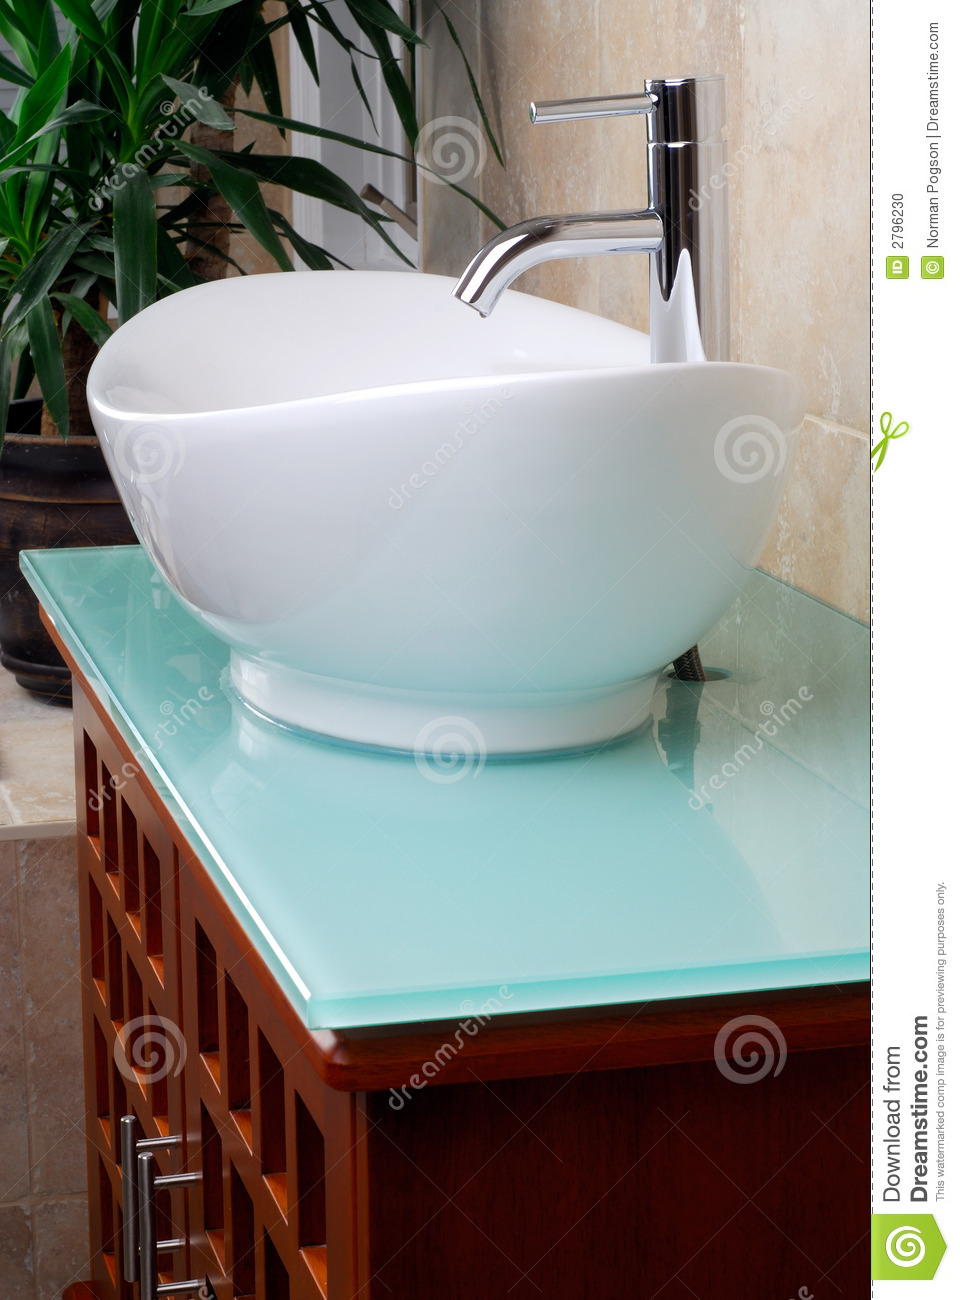 Modern Bathroom Vanity Sink Stock Photo Image 2796230